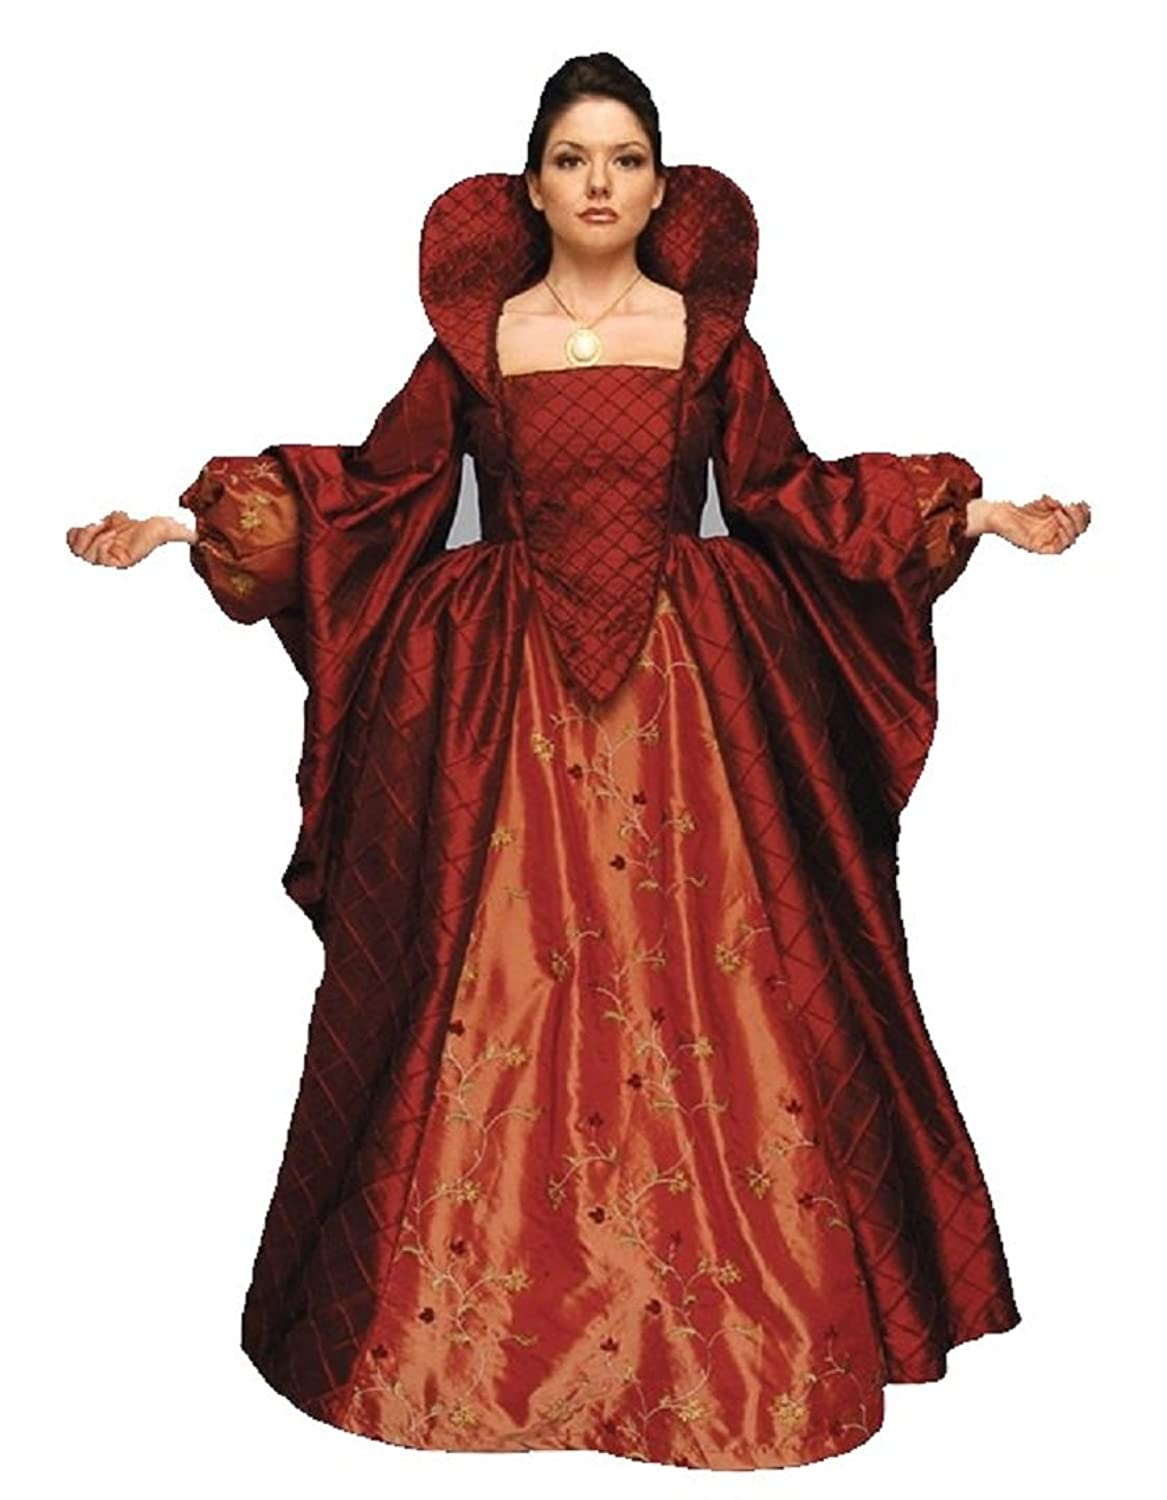 Women\u0027s Renaissance Royal Court Dress Gown Costumes